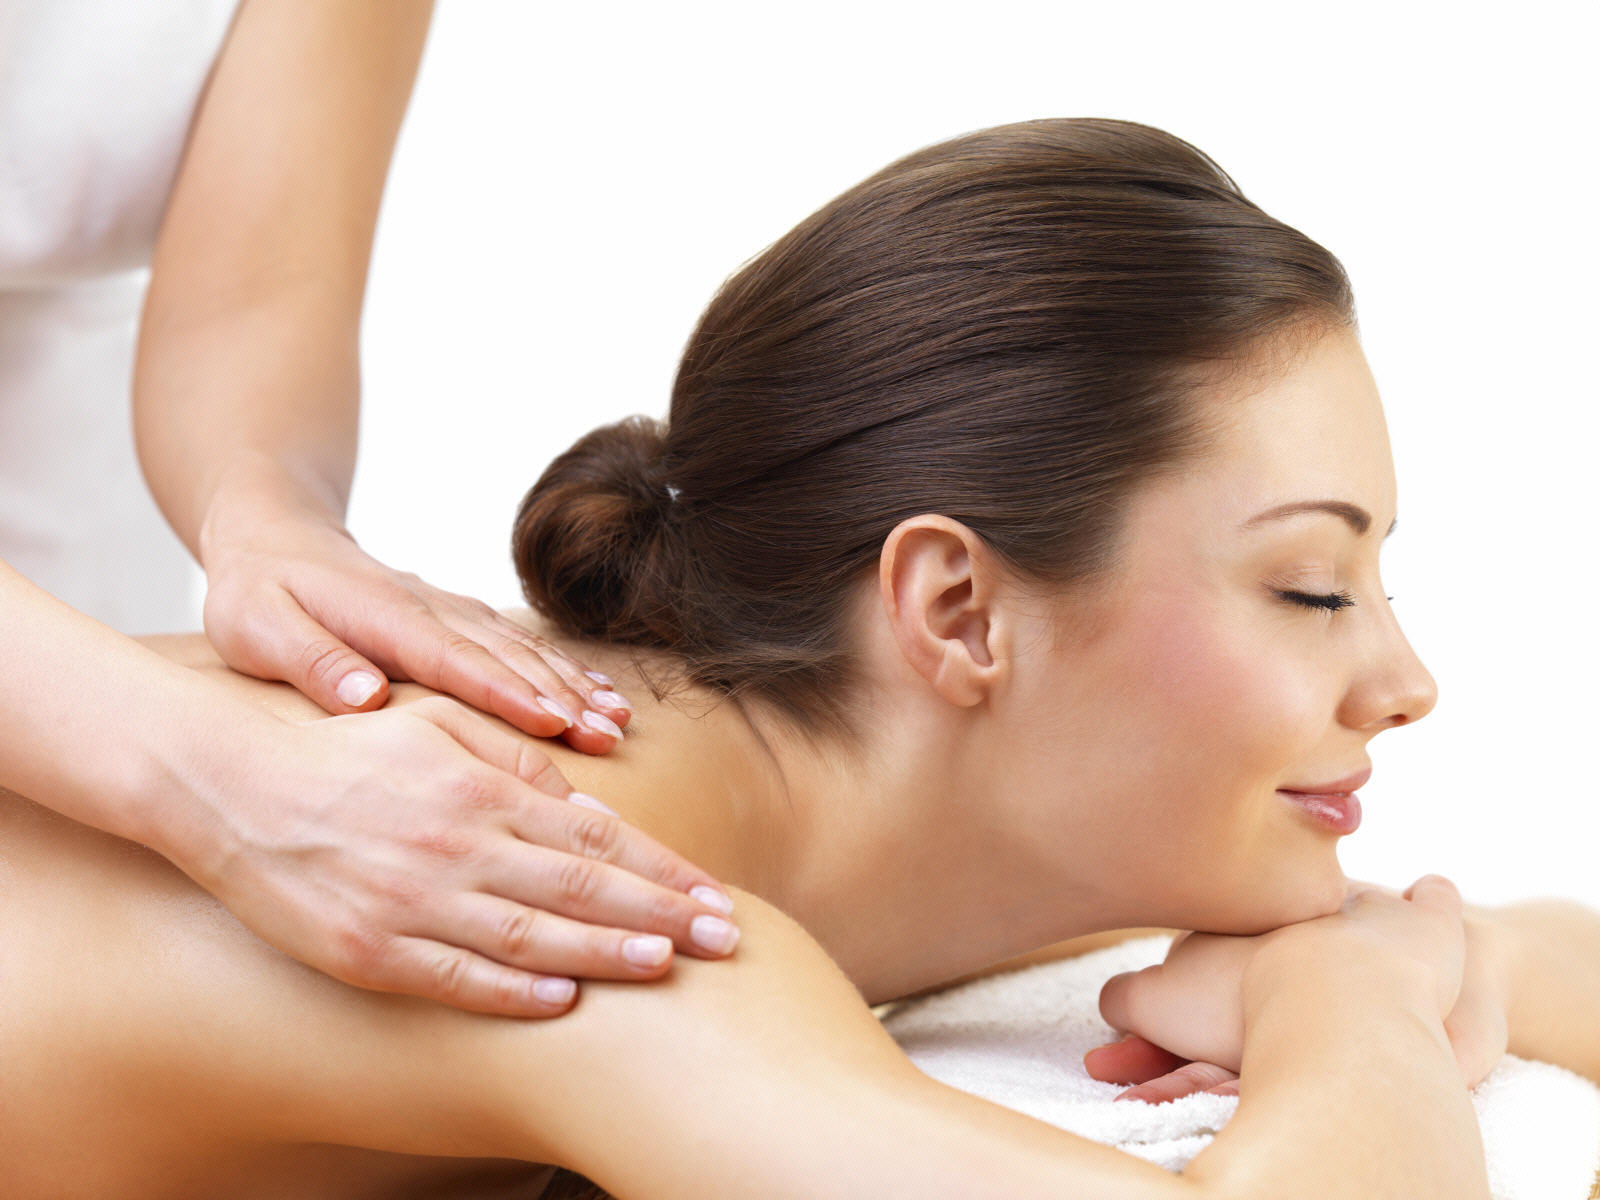 Massage Therapy   Massage is the manipulation techniques to soft tissue, generally intended to reduce stress and fatigue while improving circulation. Read More →